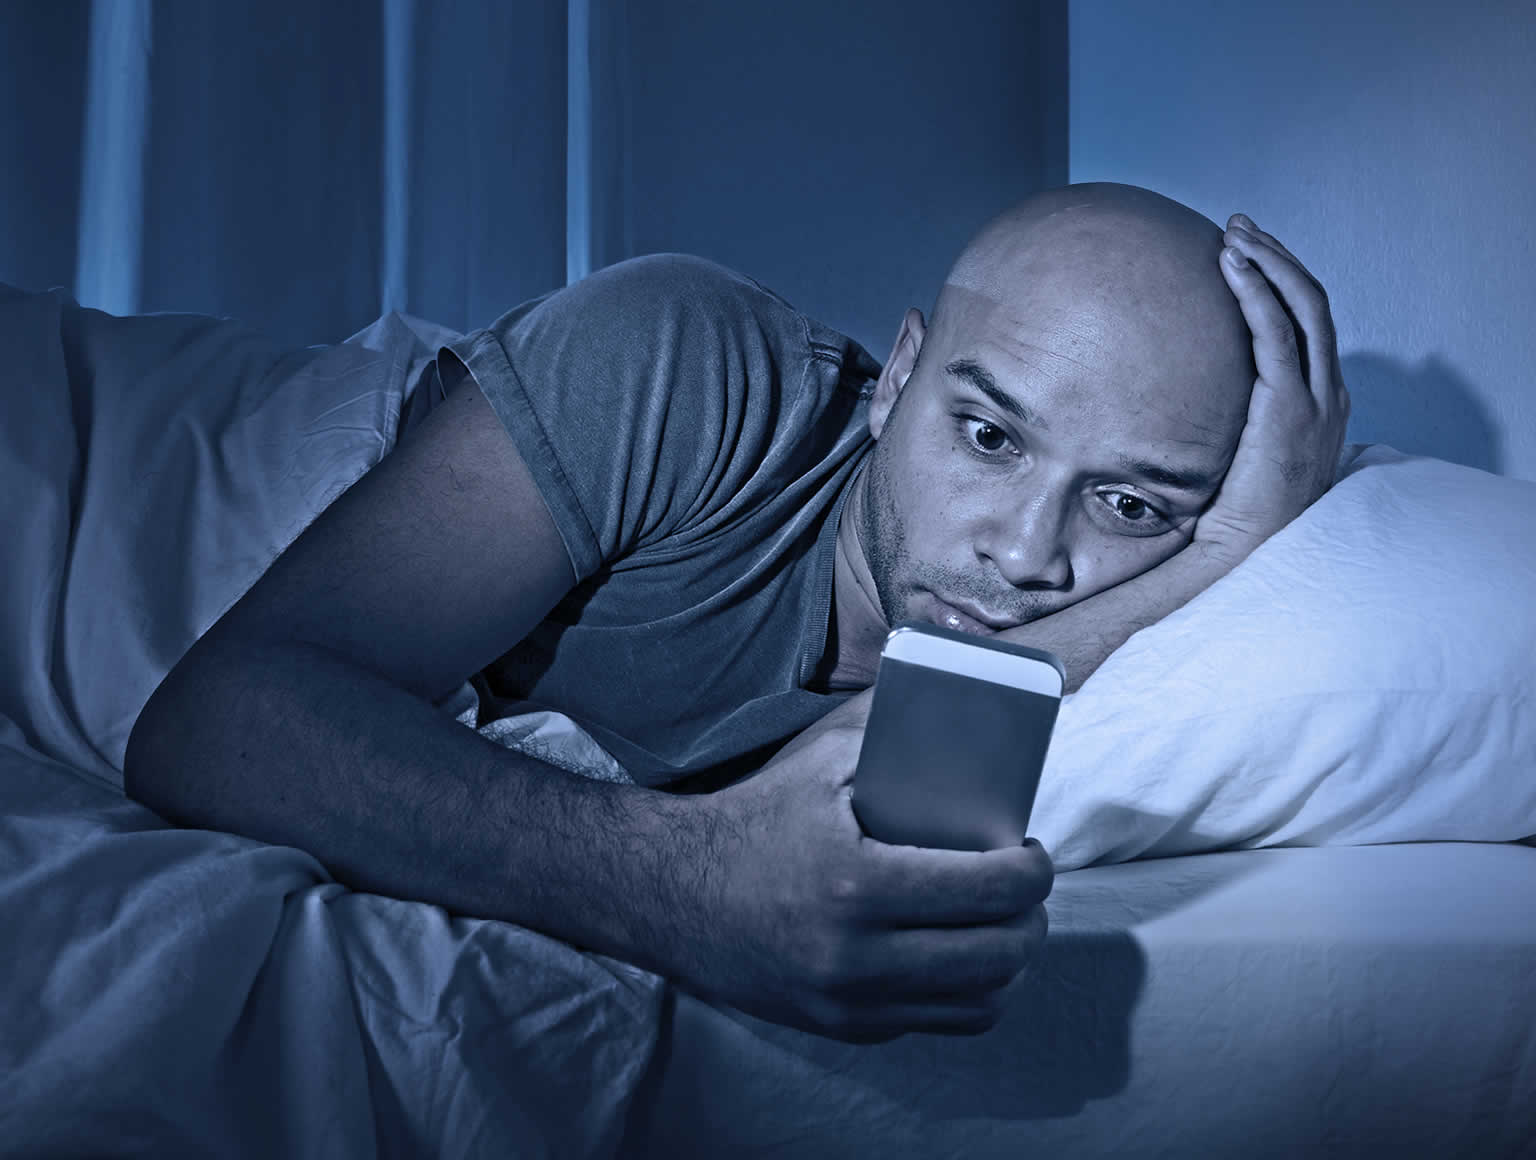 Man in bed at night looking at mobile phone screen.